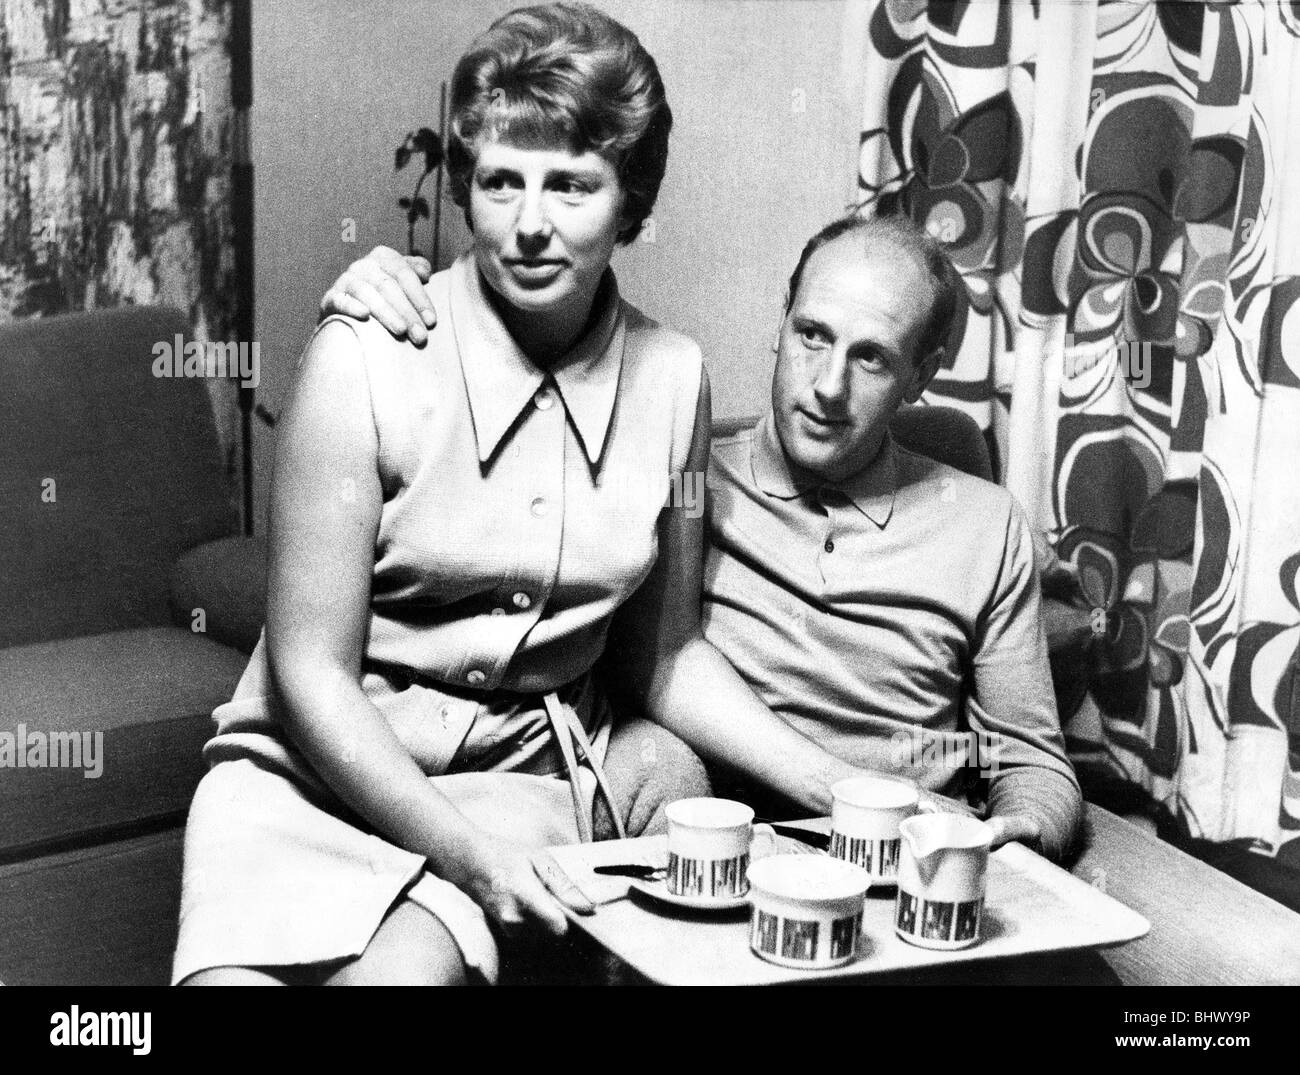 Newcastle United player Jim Iley relaxes with his wife Lily 17 September 1967. Jim Iley is caught at home with his - Stock Image